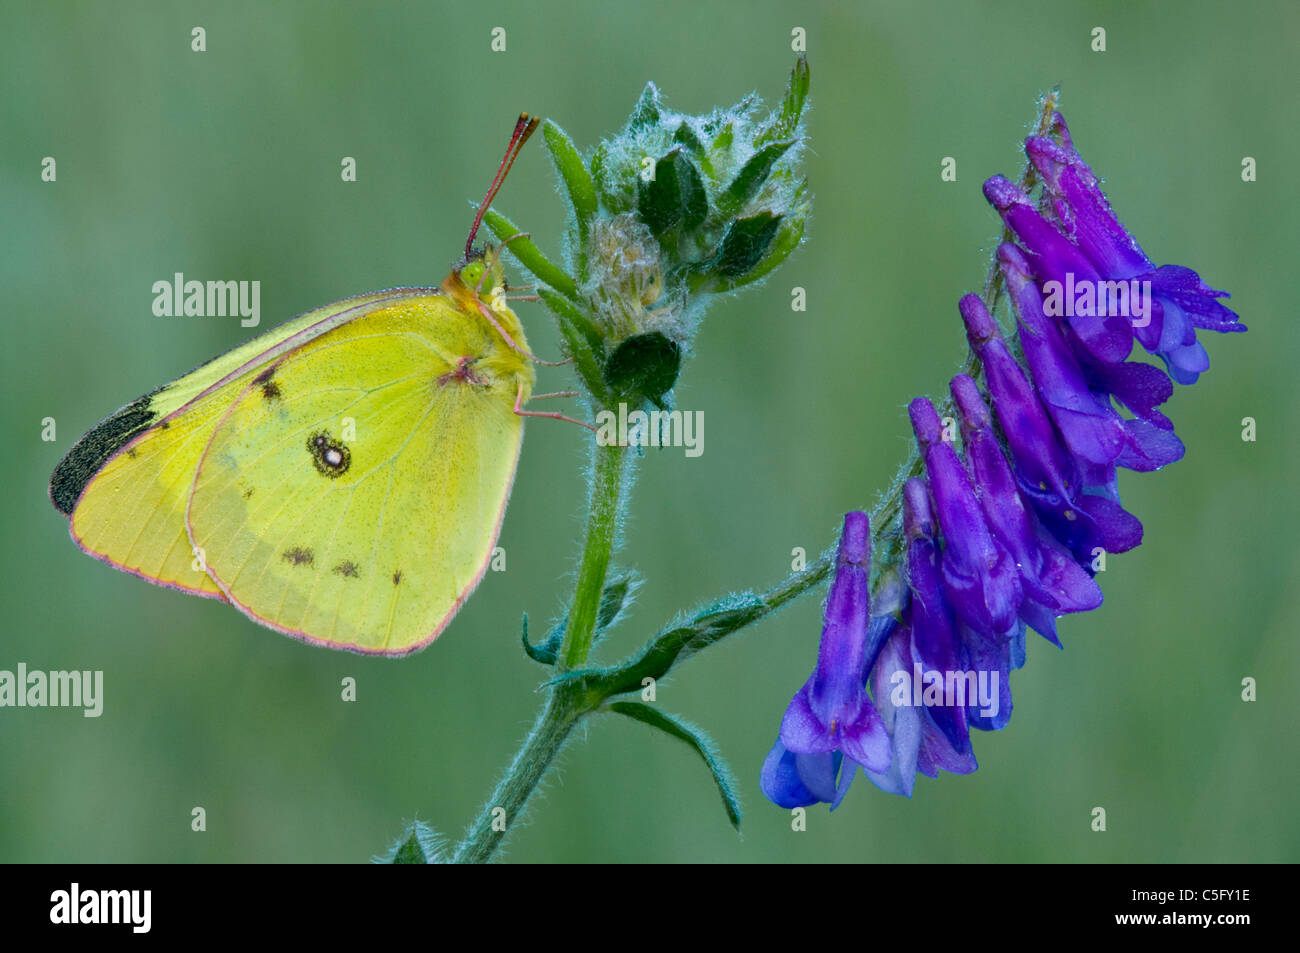 Clouded Sulphur Butterfly Colias philodice perched on Cow Vetch Vicia cracca Michigan USA - Stock Image